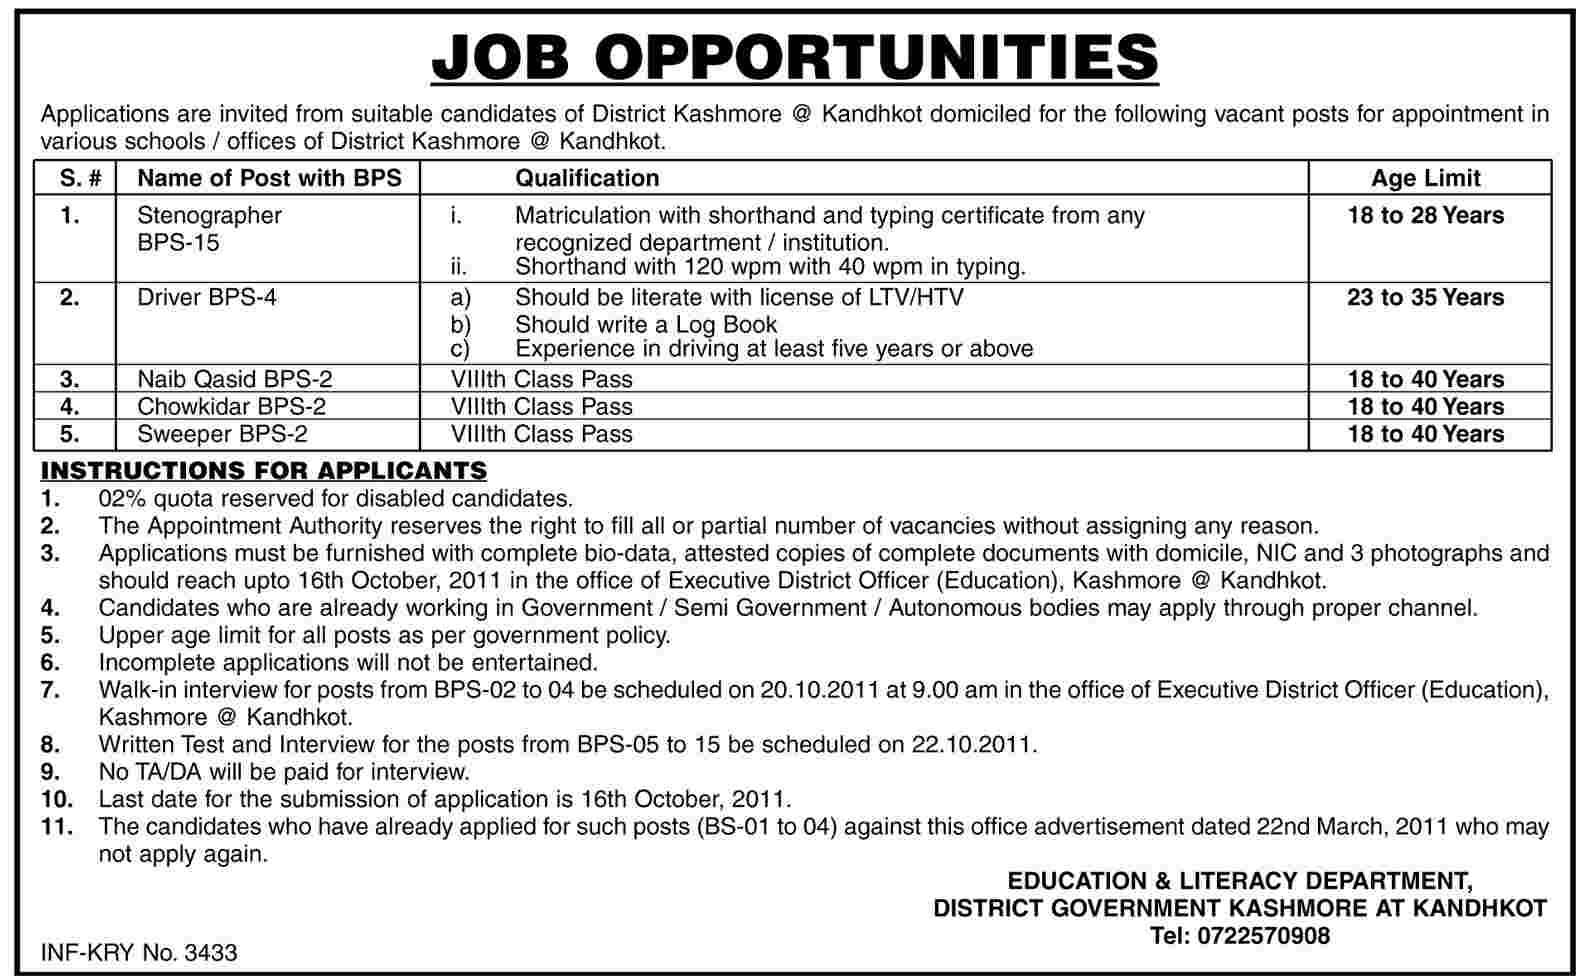 Education and Literacy Department, District Government Kashmore at Kandhkot Jobs Opportunities